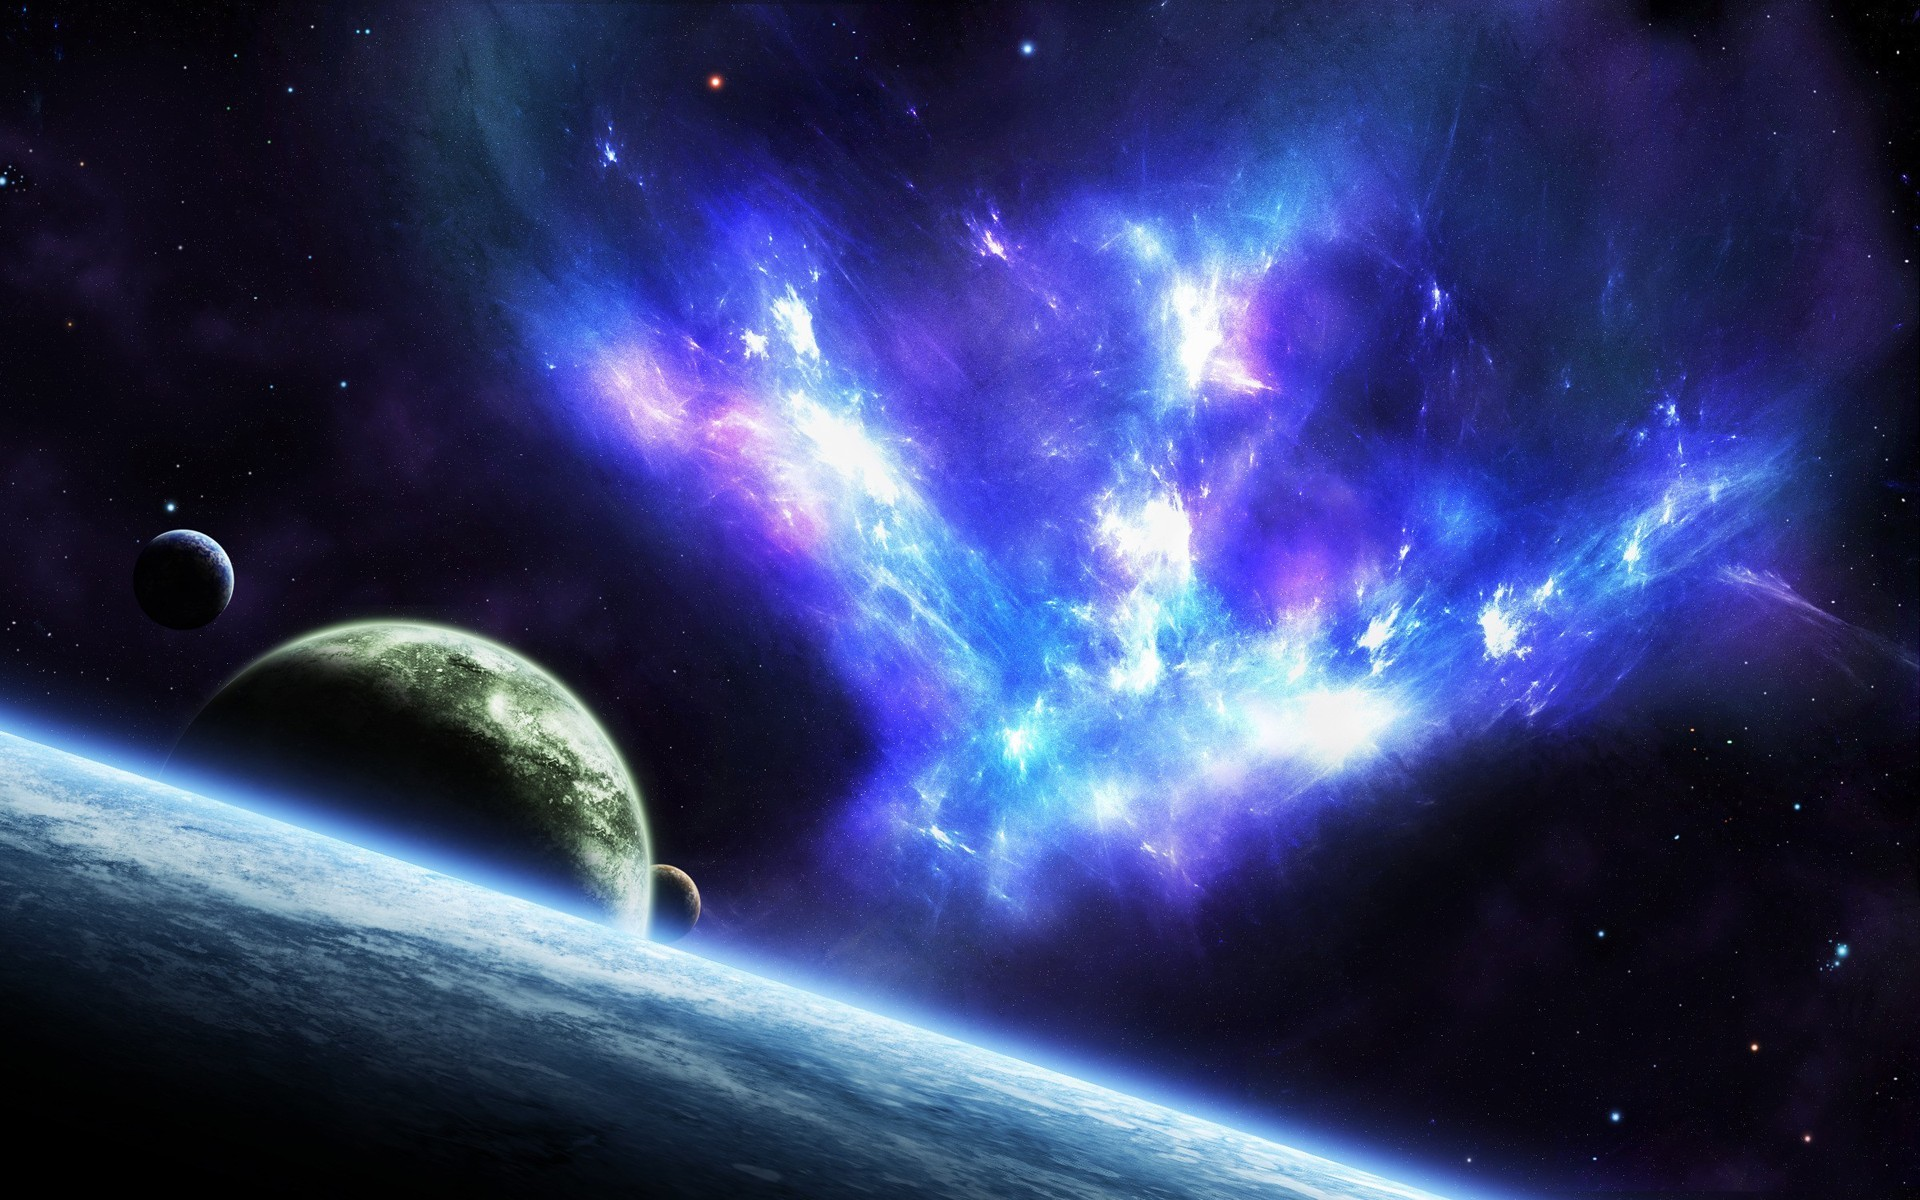 Space stars planets